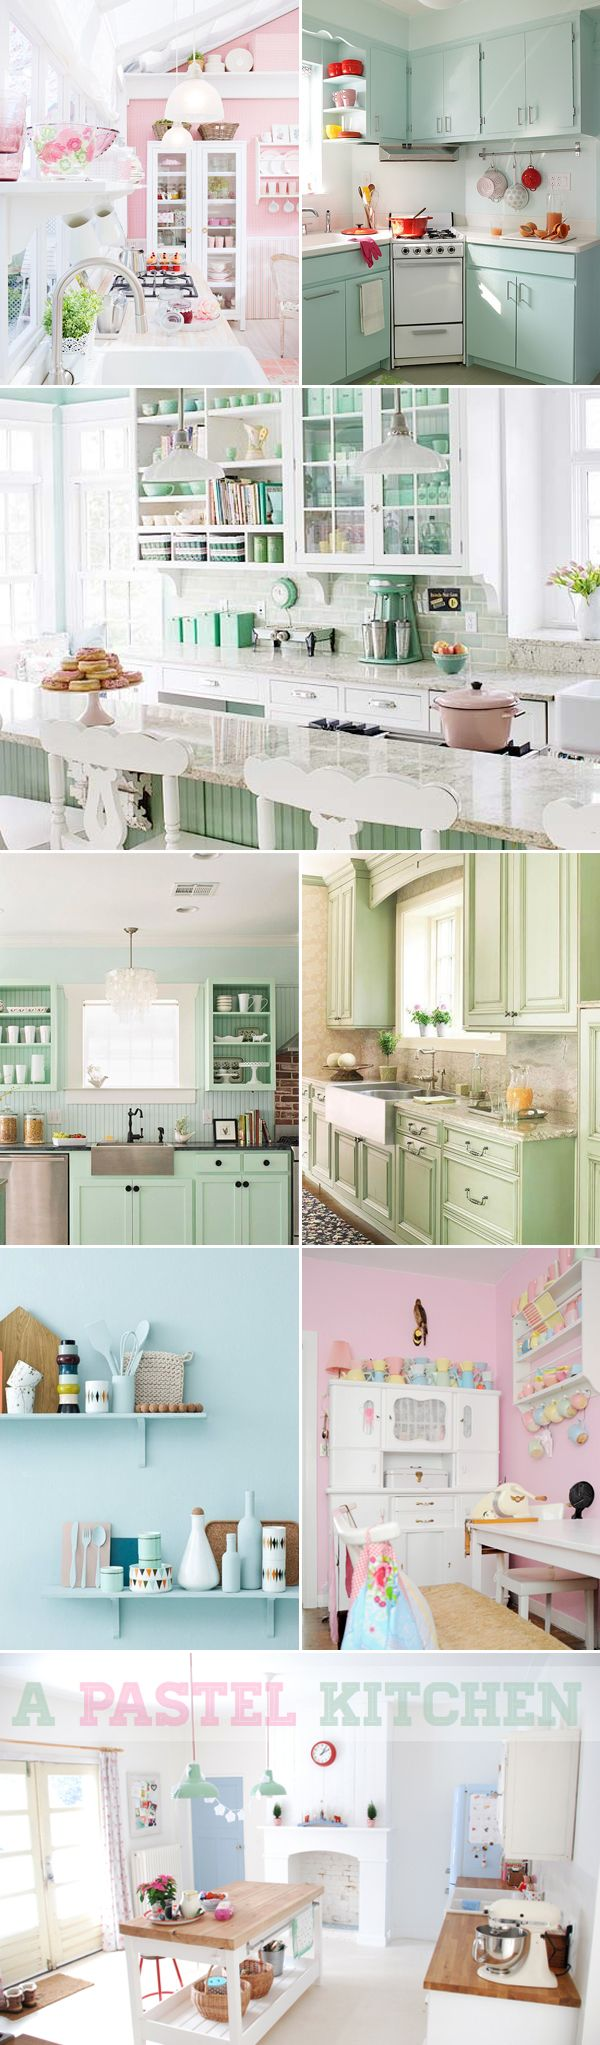 Best 25+ Pastel kitchen ideas on Pinterest | Countertop decor ...